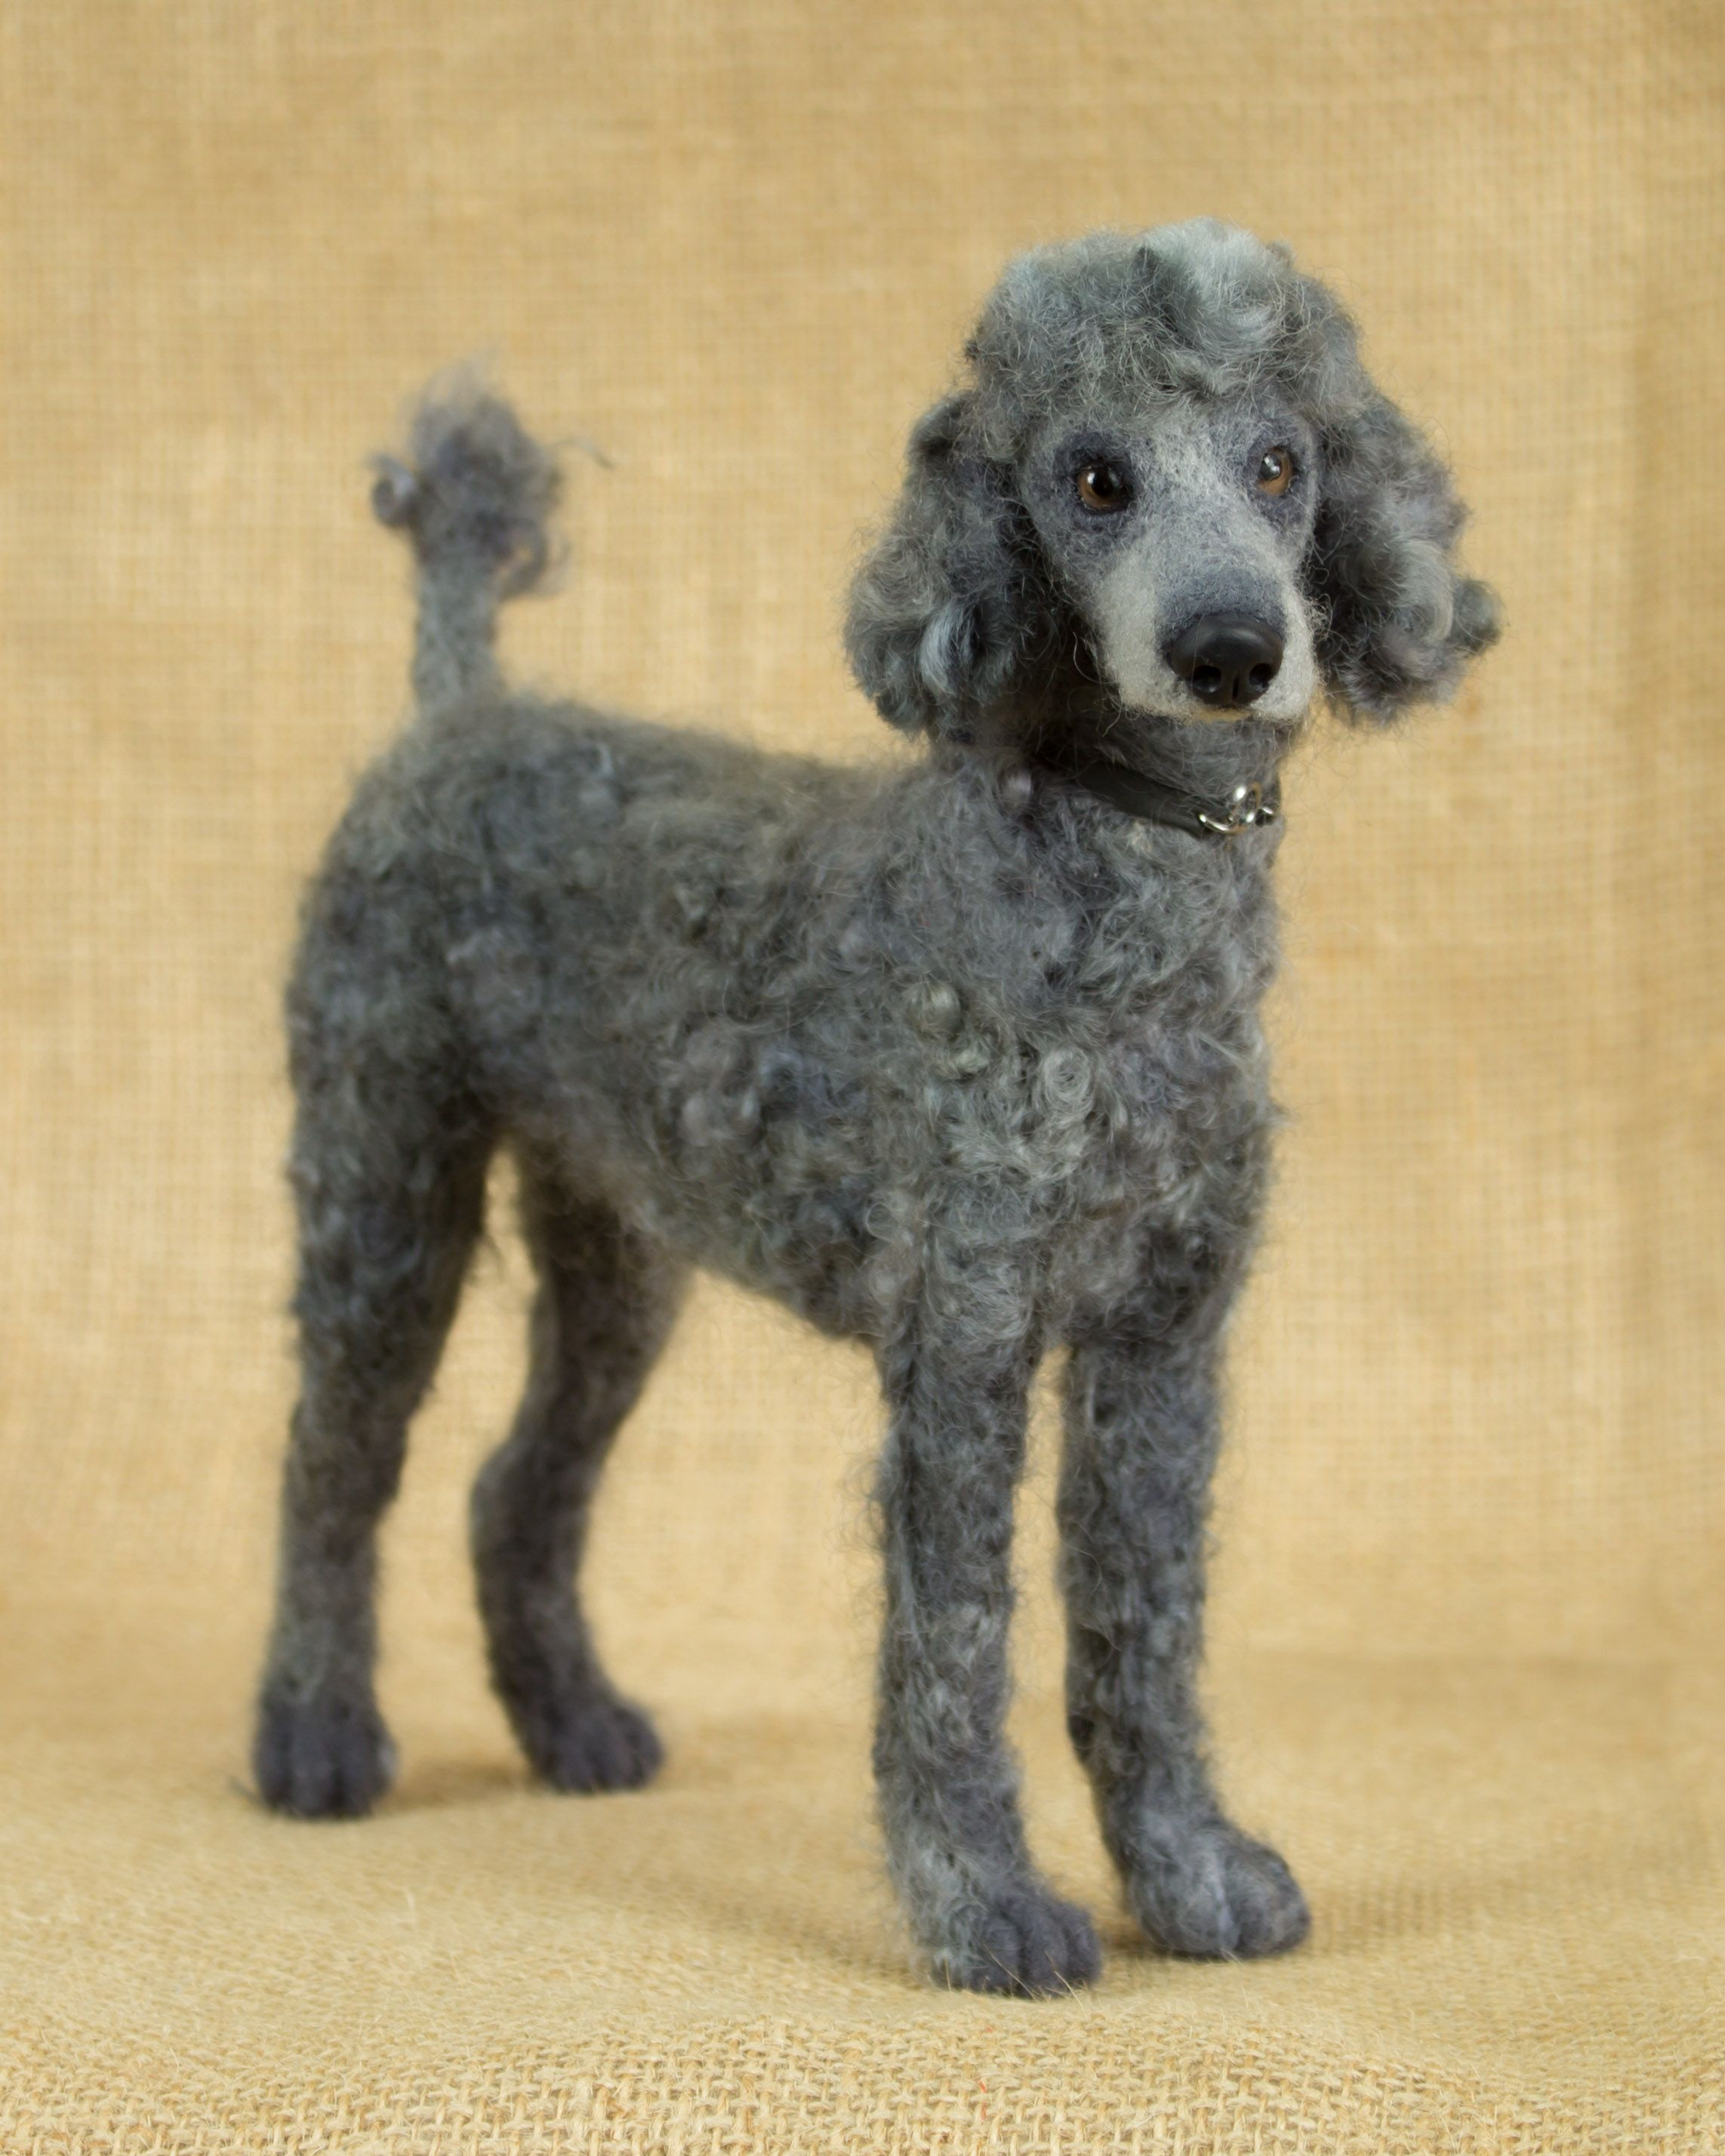 Stasiu The Poodle Needle Felted Animal Sculpture By Megan Nedds